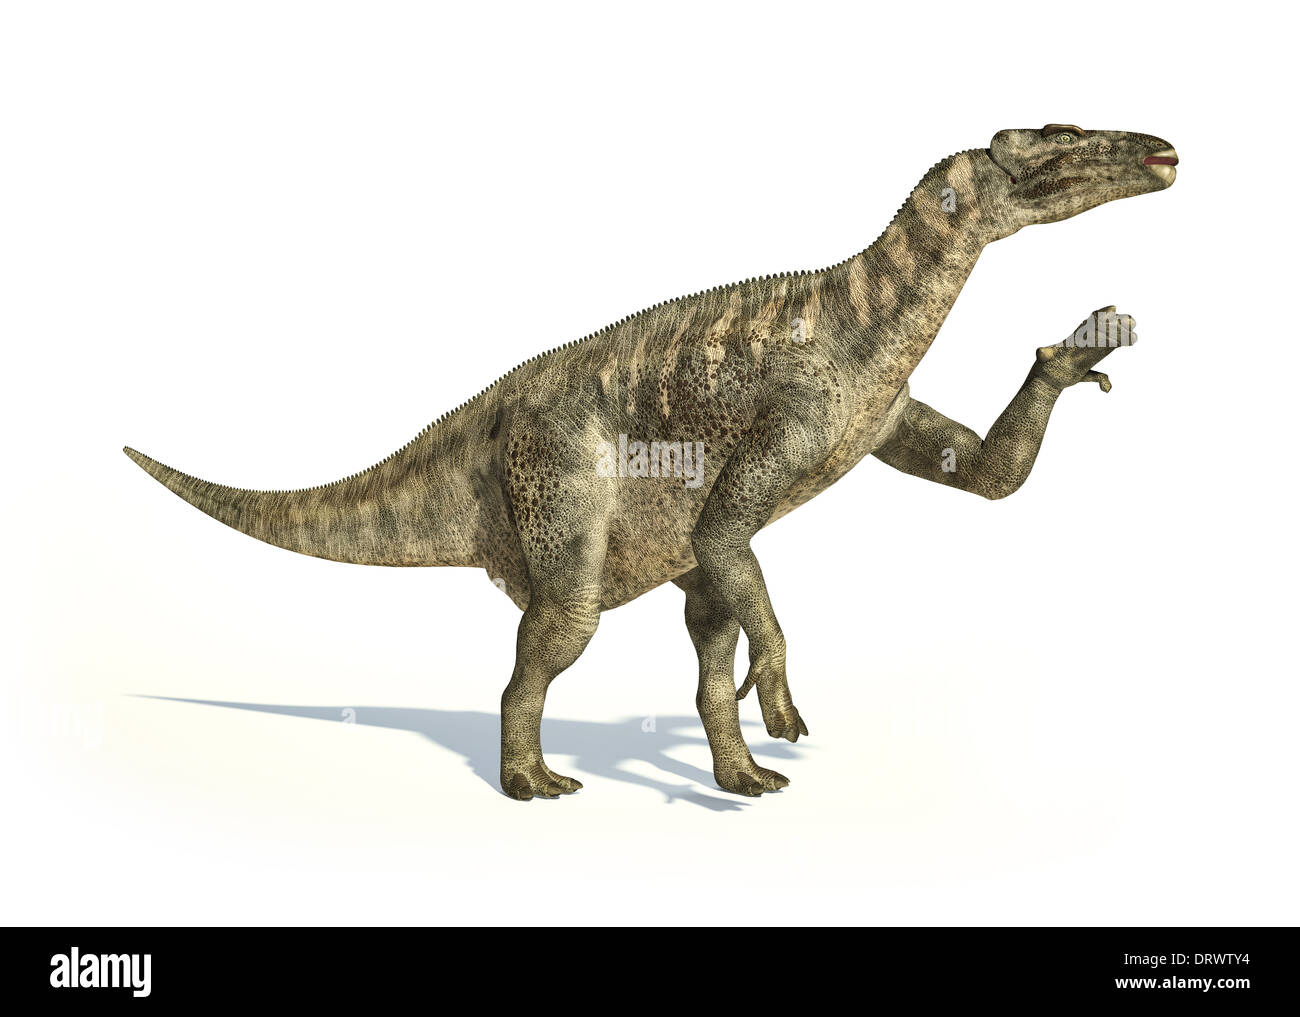 Iguanodon Dinosaur photo-realistic and scientifically correct representation, in dynamic posture. On white background. - Stock Image